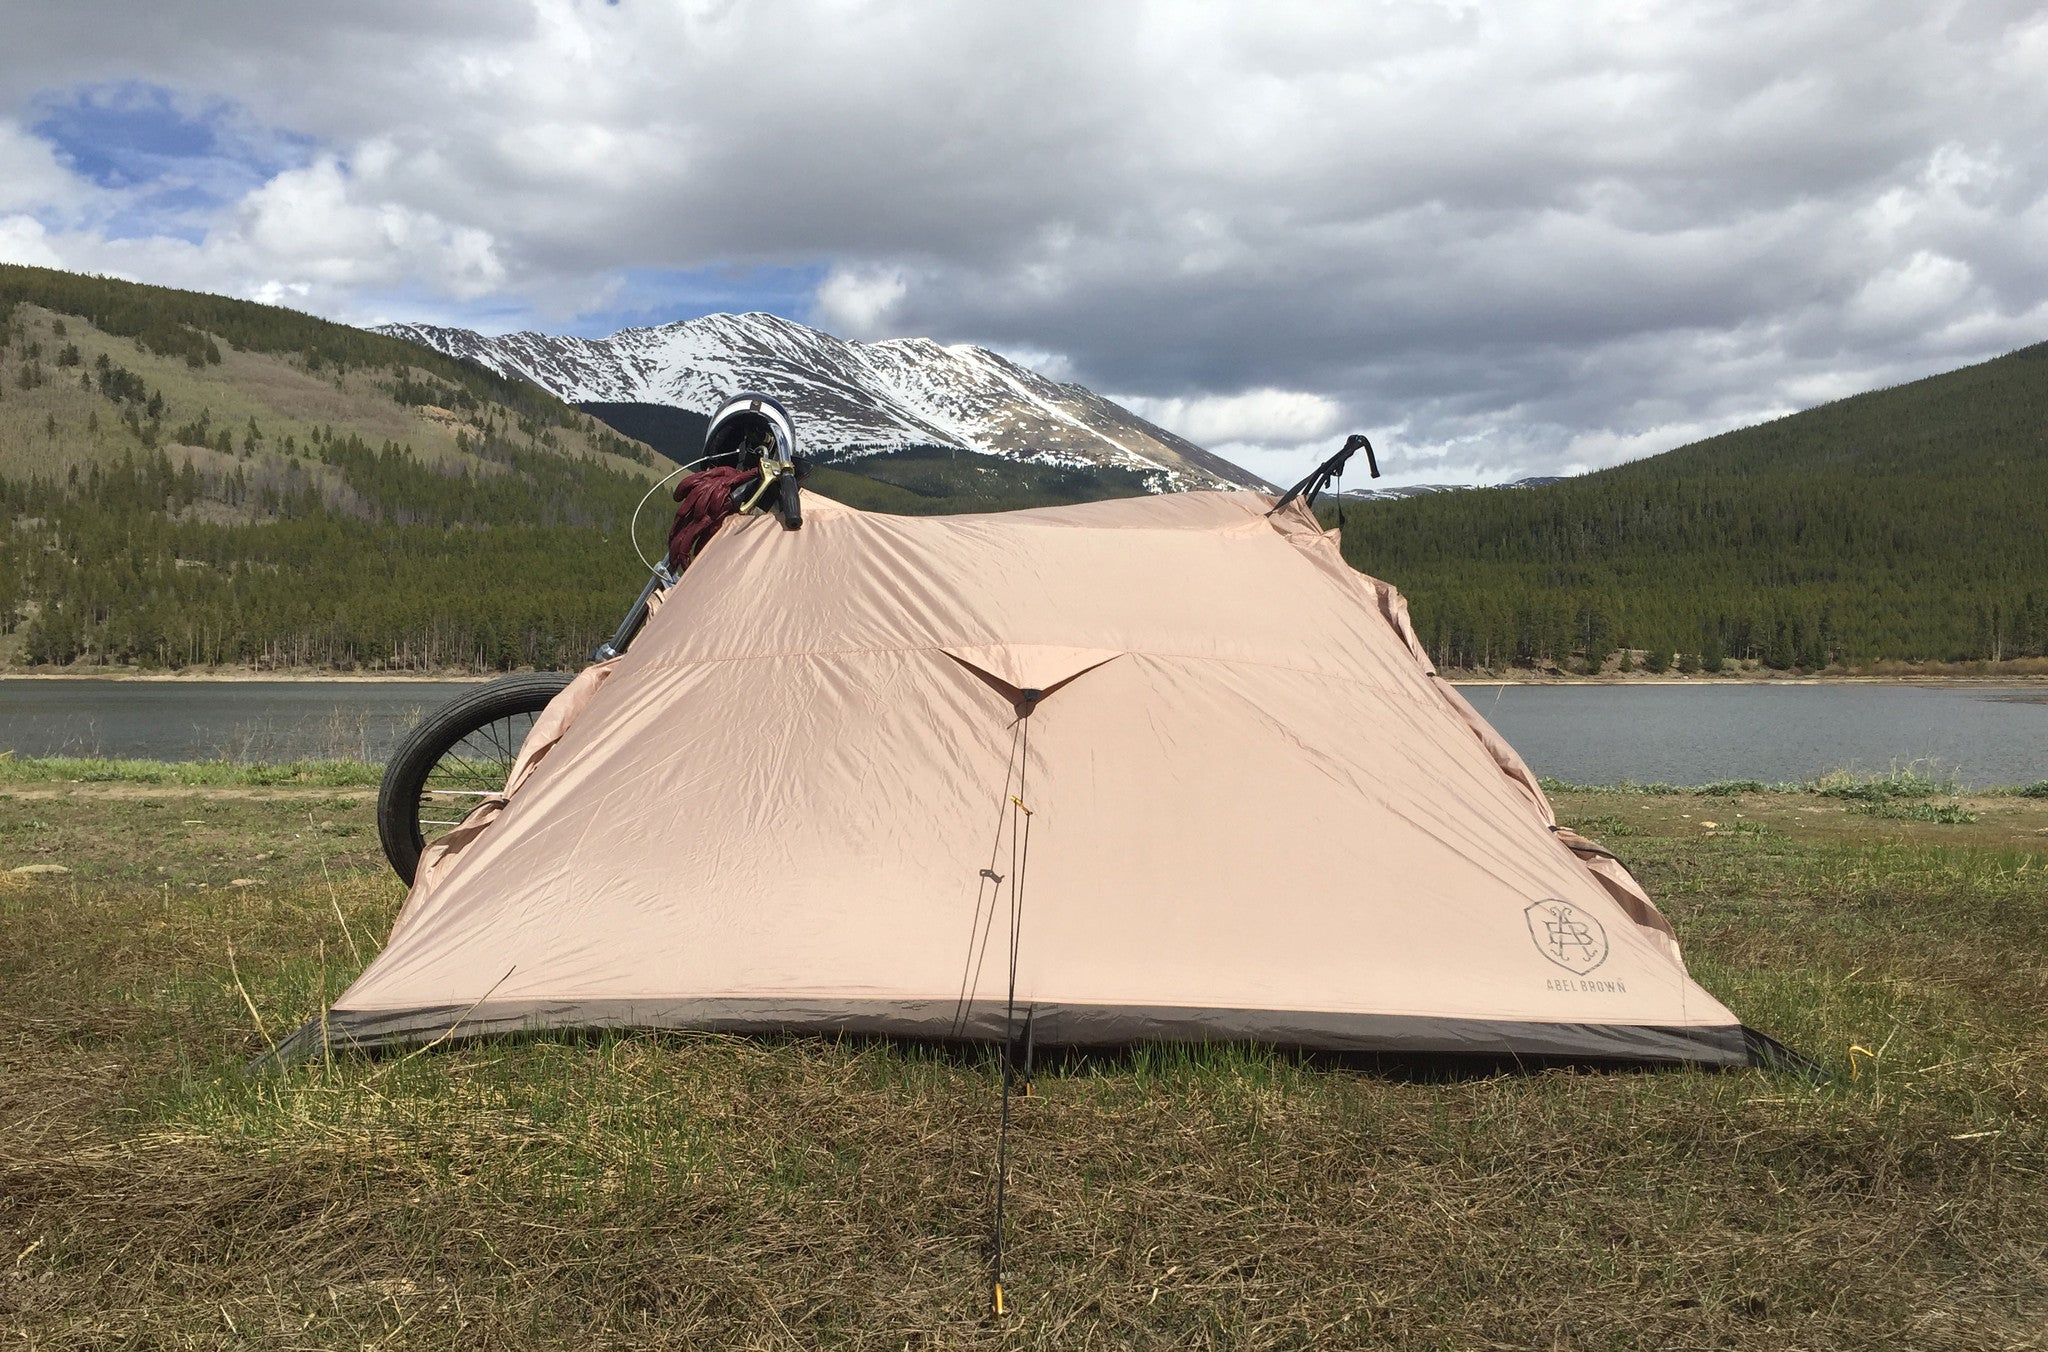 Best motorcycle tent. Nomad 2 motorcycle tent connects directly to your motorcycle with no poles.